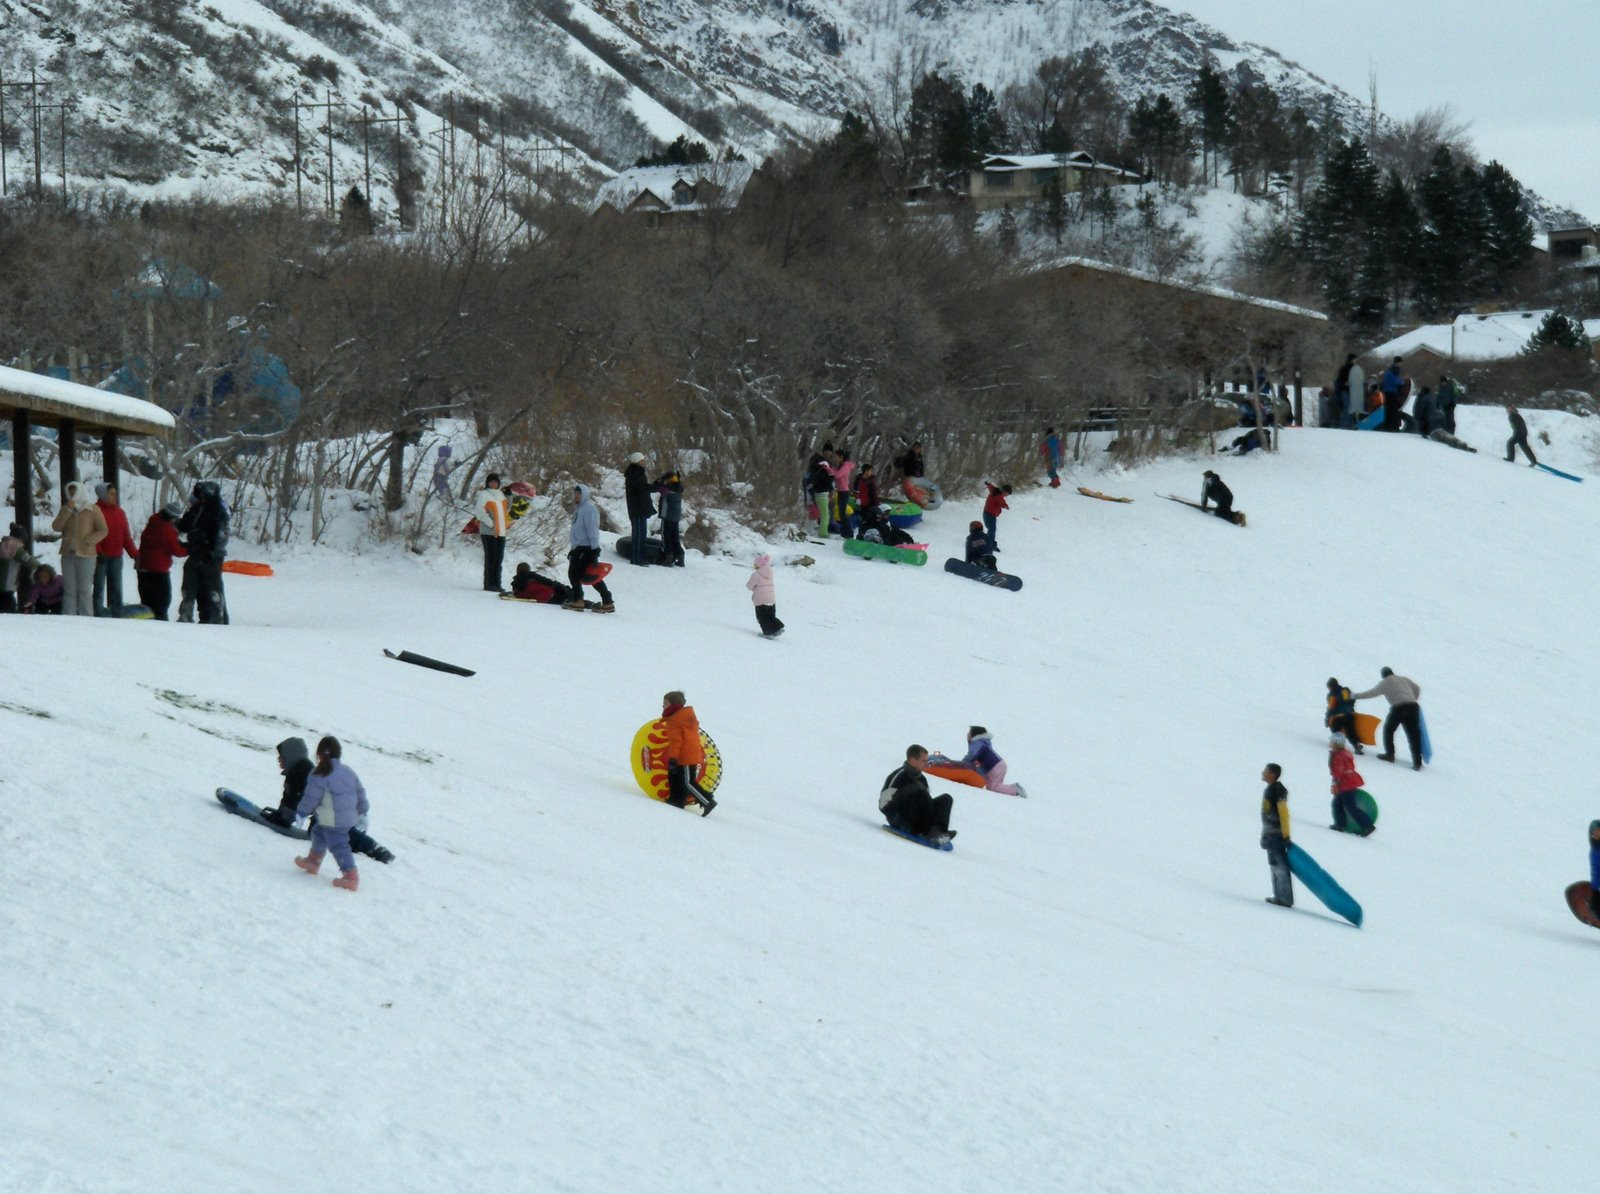 People sledding down the hill at Rock Canyon Park in Provo